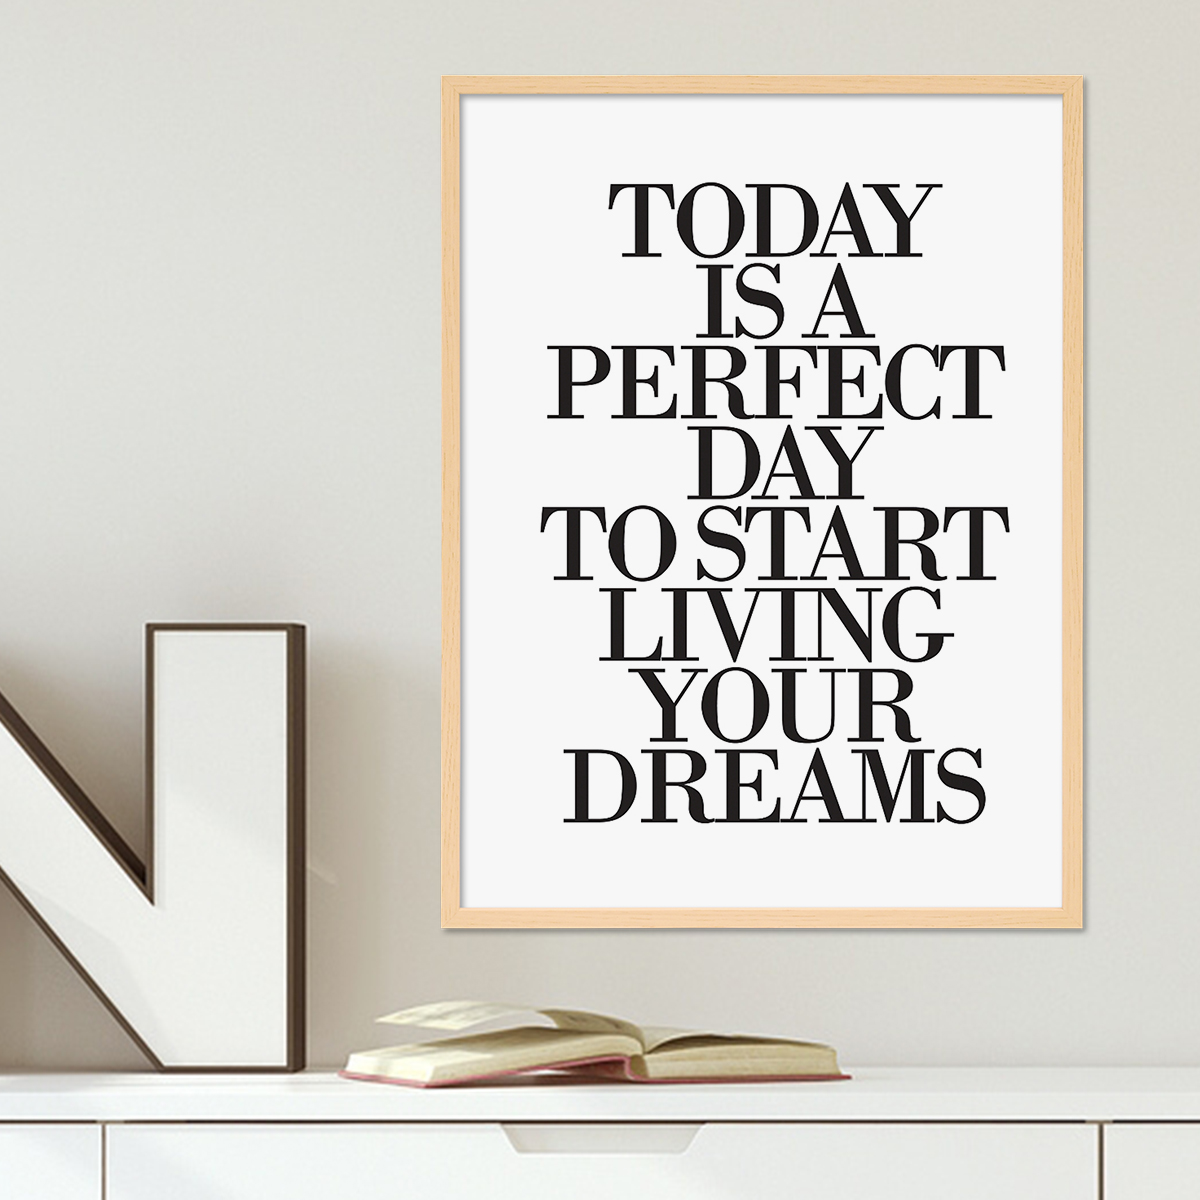 design poster mit bilderrahmen natur 39 today is a perfect day 39 30x40 cm schwarz weiss typographie. Black Bedroom Furniture Sets. Home Design Ideas